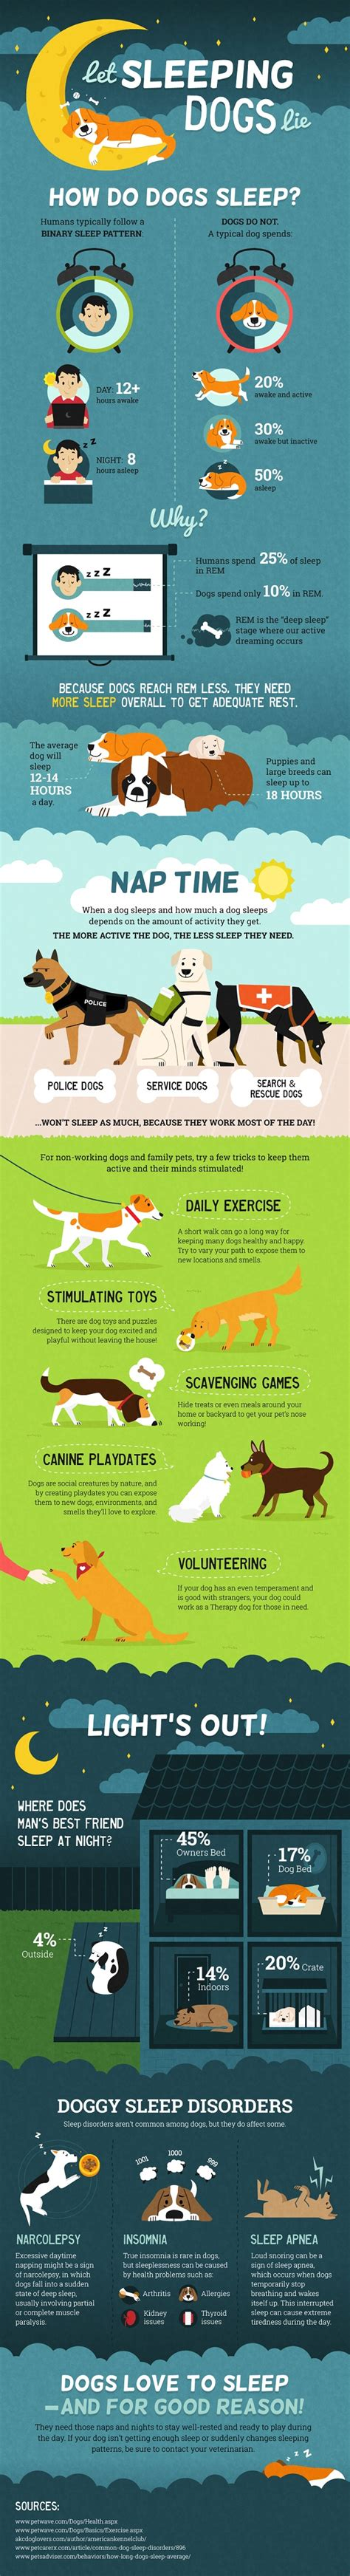 how much sleep do dogs need let sleeping dogs lie but how much sleep do dogs need daily tagdaily tag